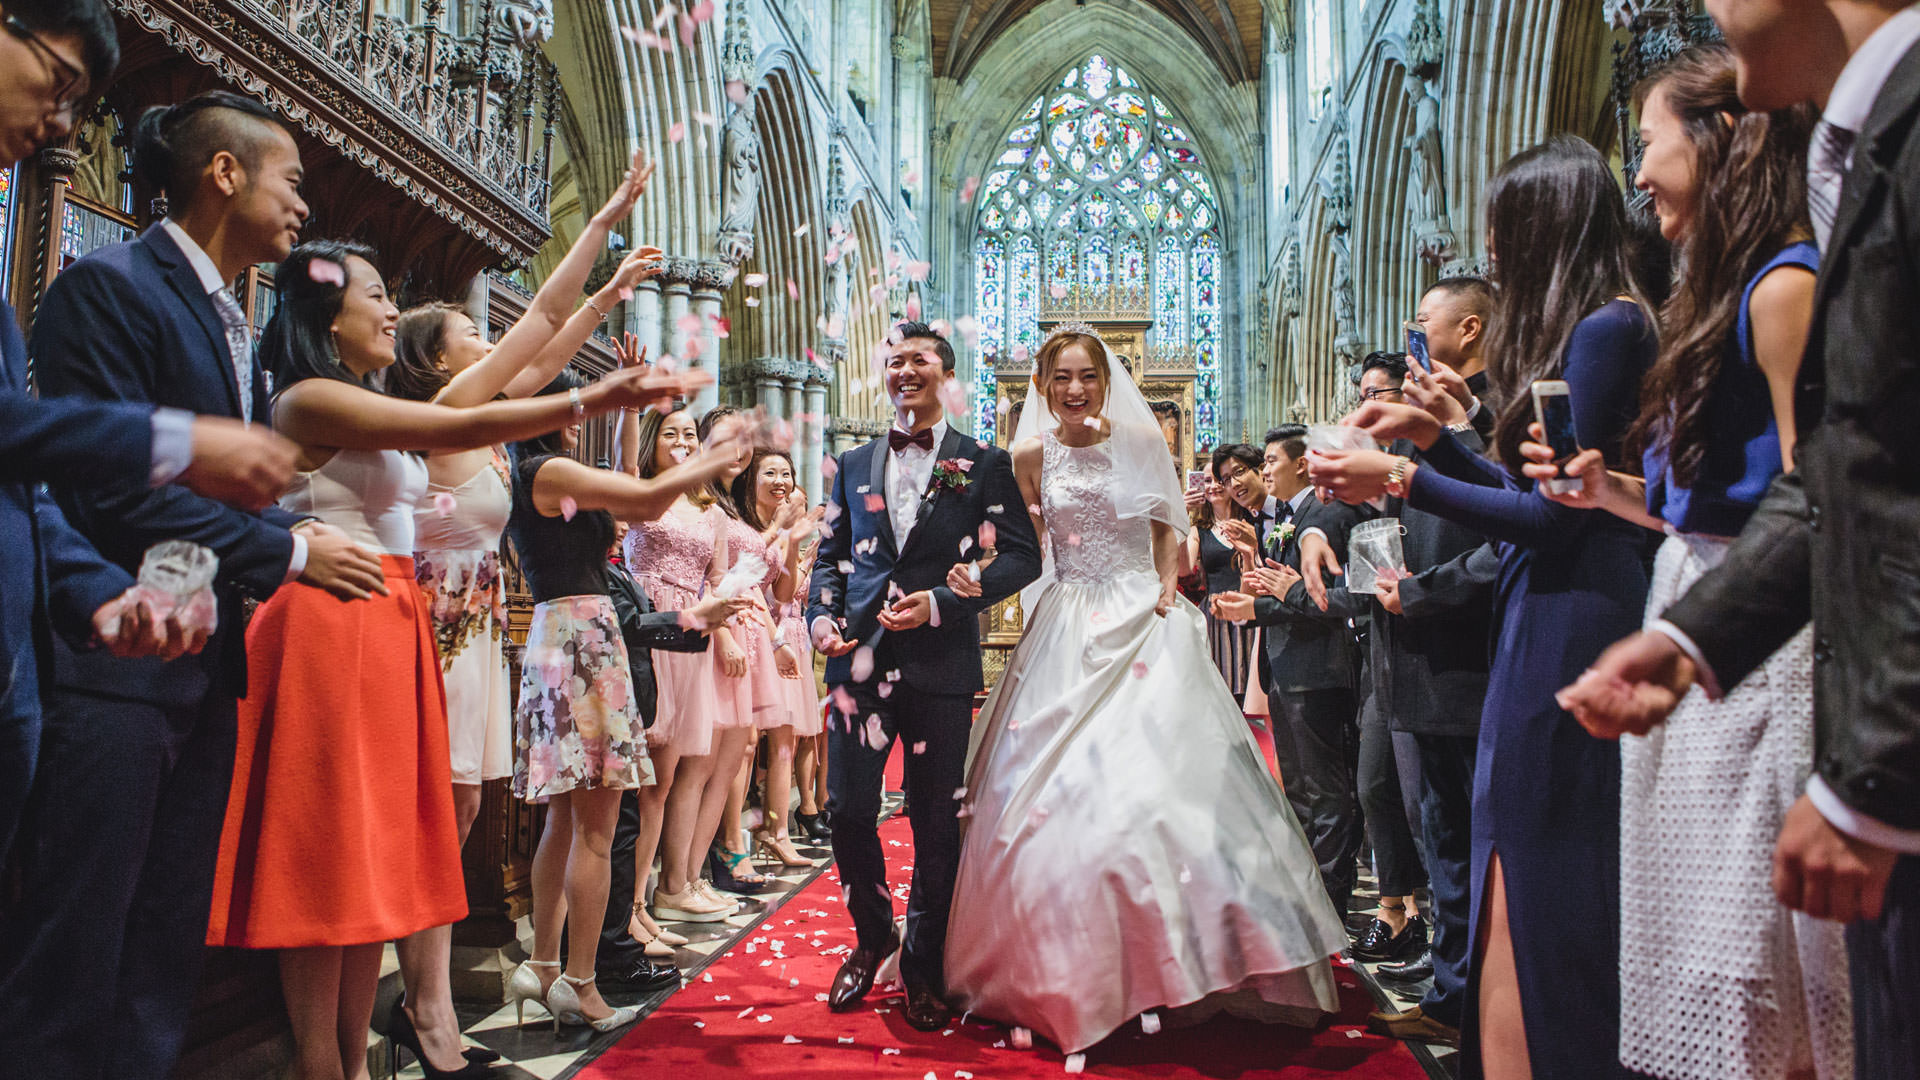 Wedding photographer based in Yorkshire, Tierney Photography.